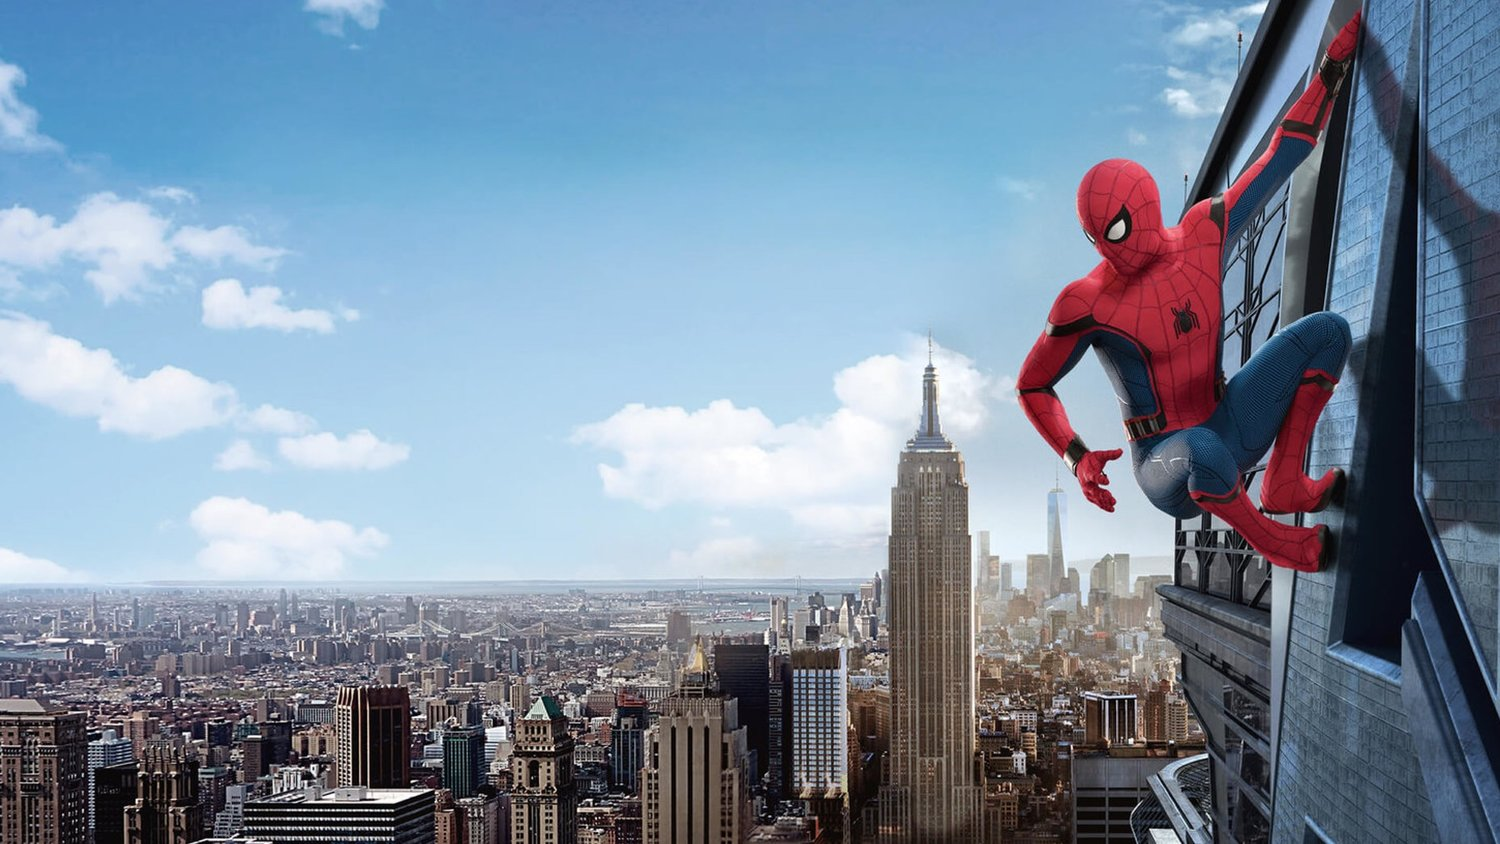 New Details on When SPIDER-MAN: HOMECOMING Will Be in the MCU